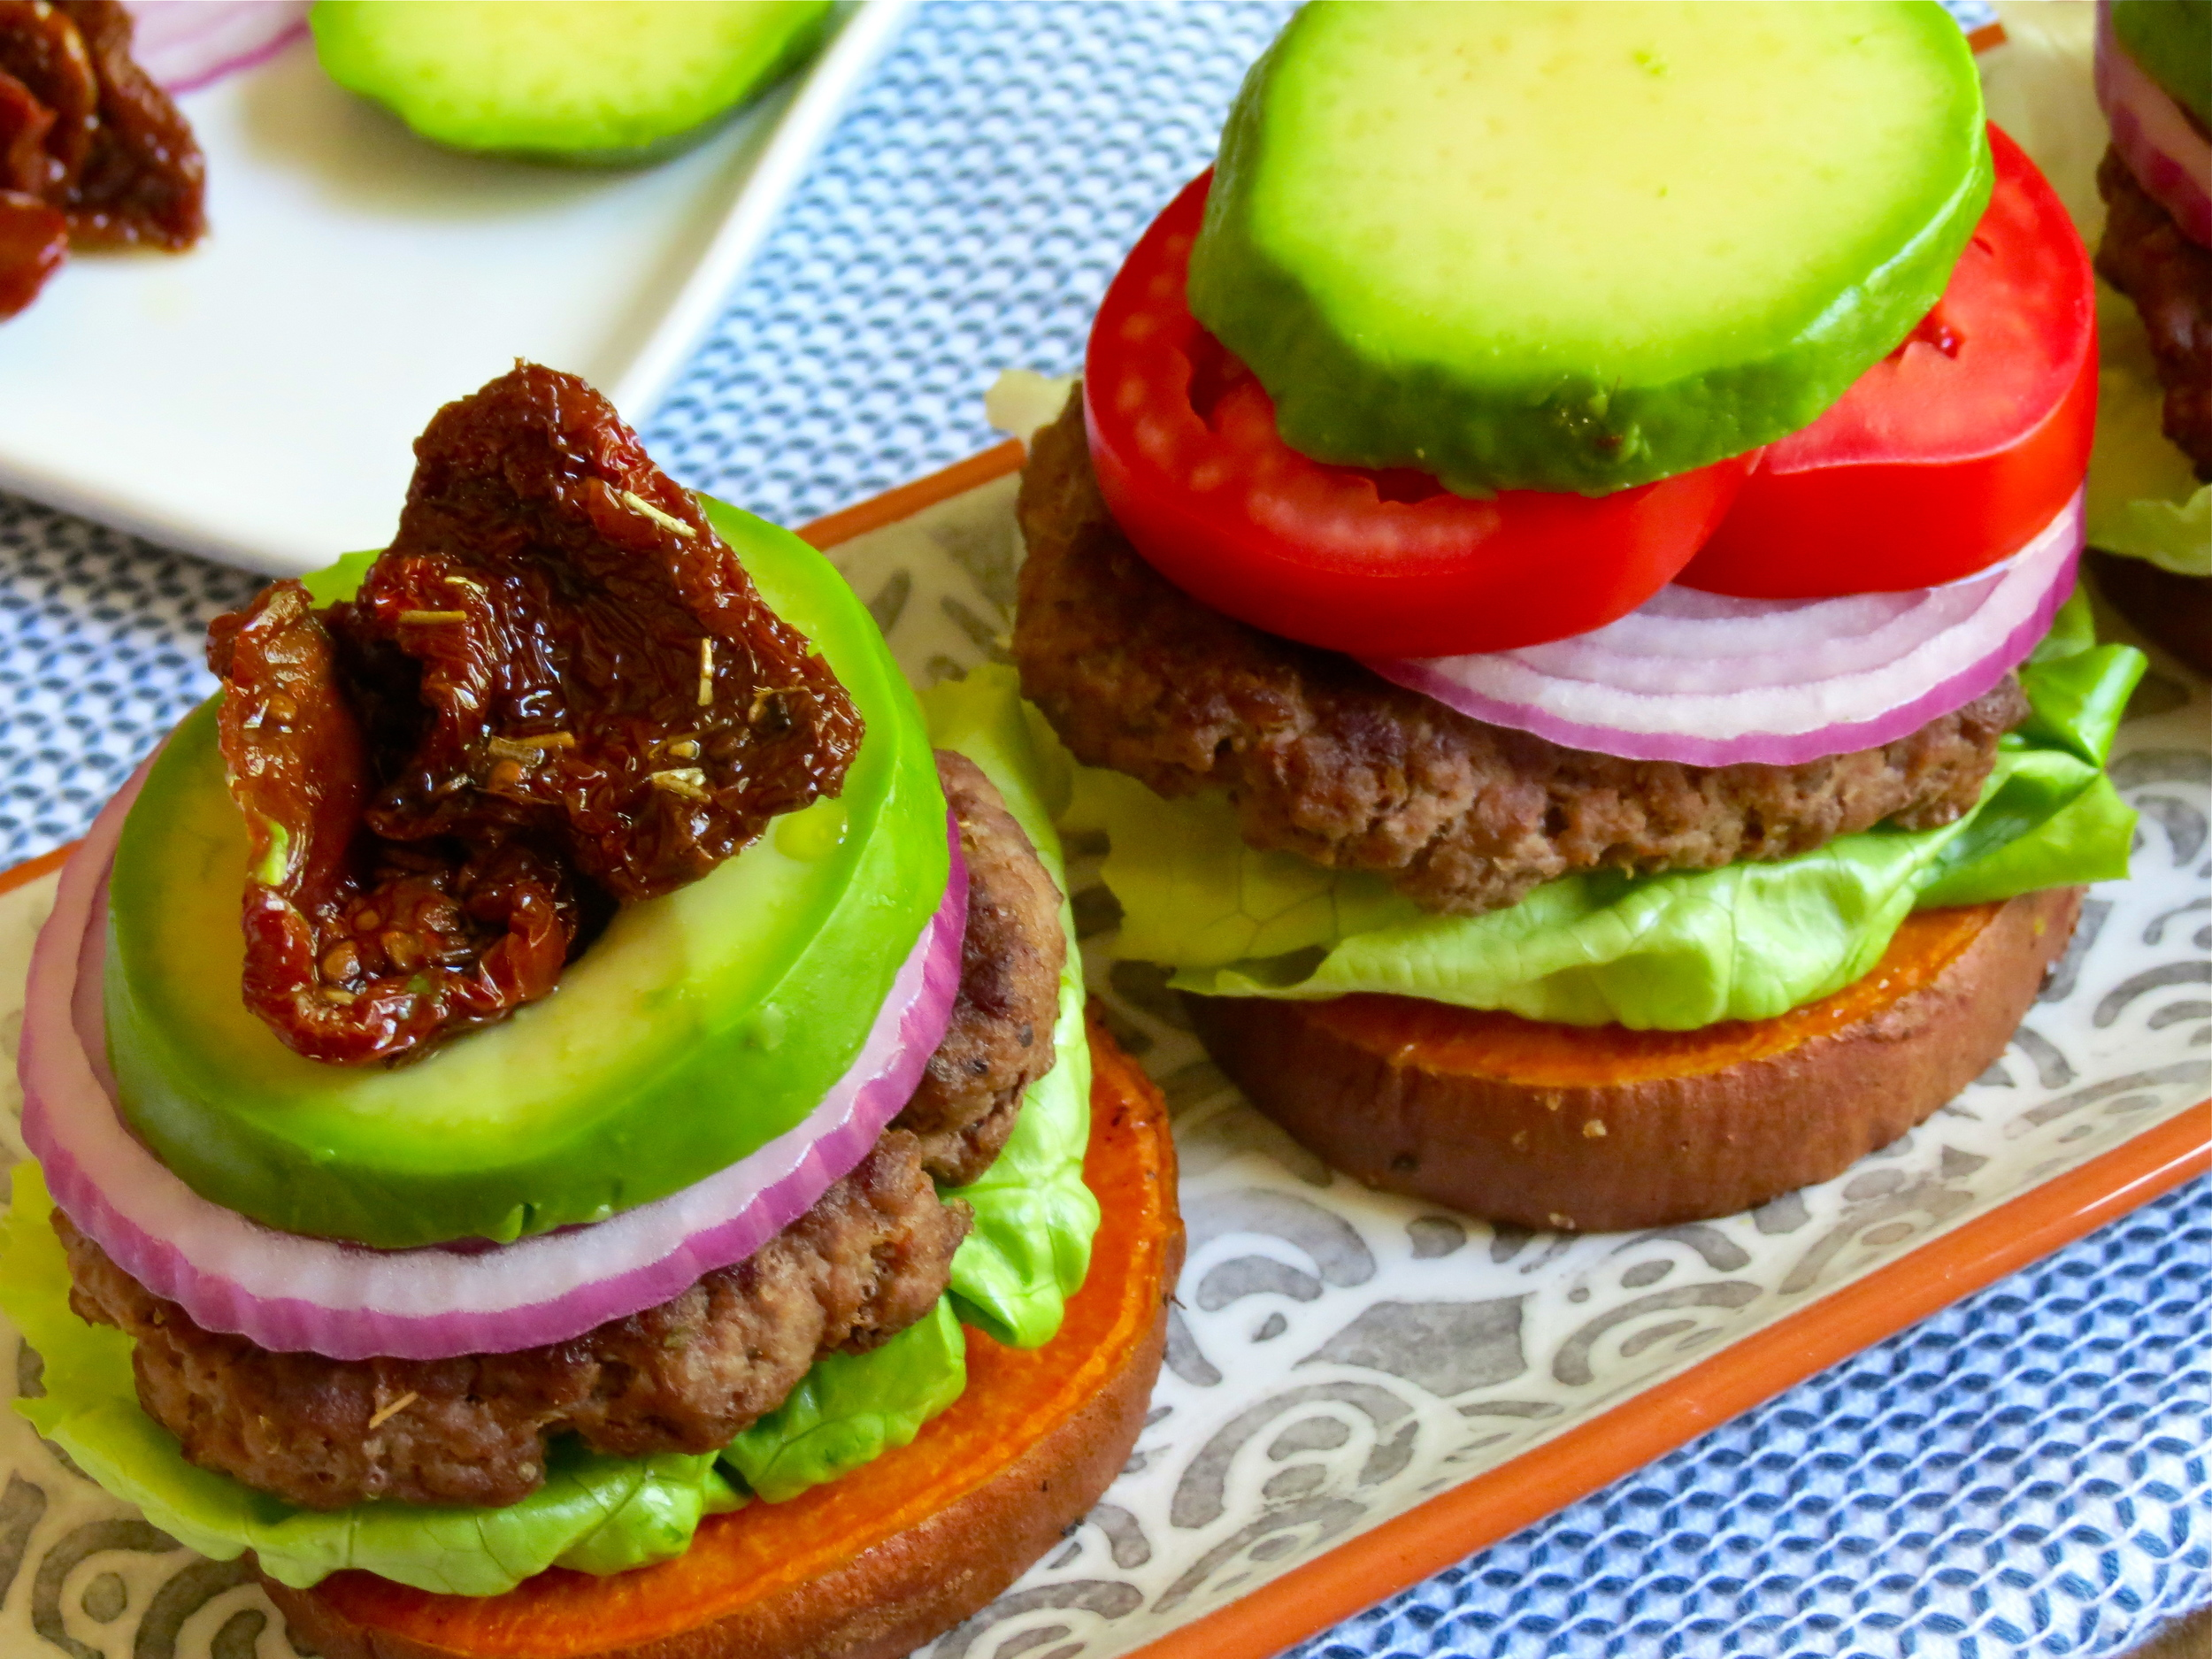 I absolutely love sun-dried tomatoes and avocado with this!